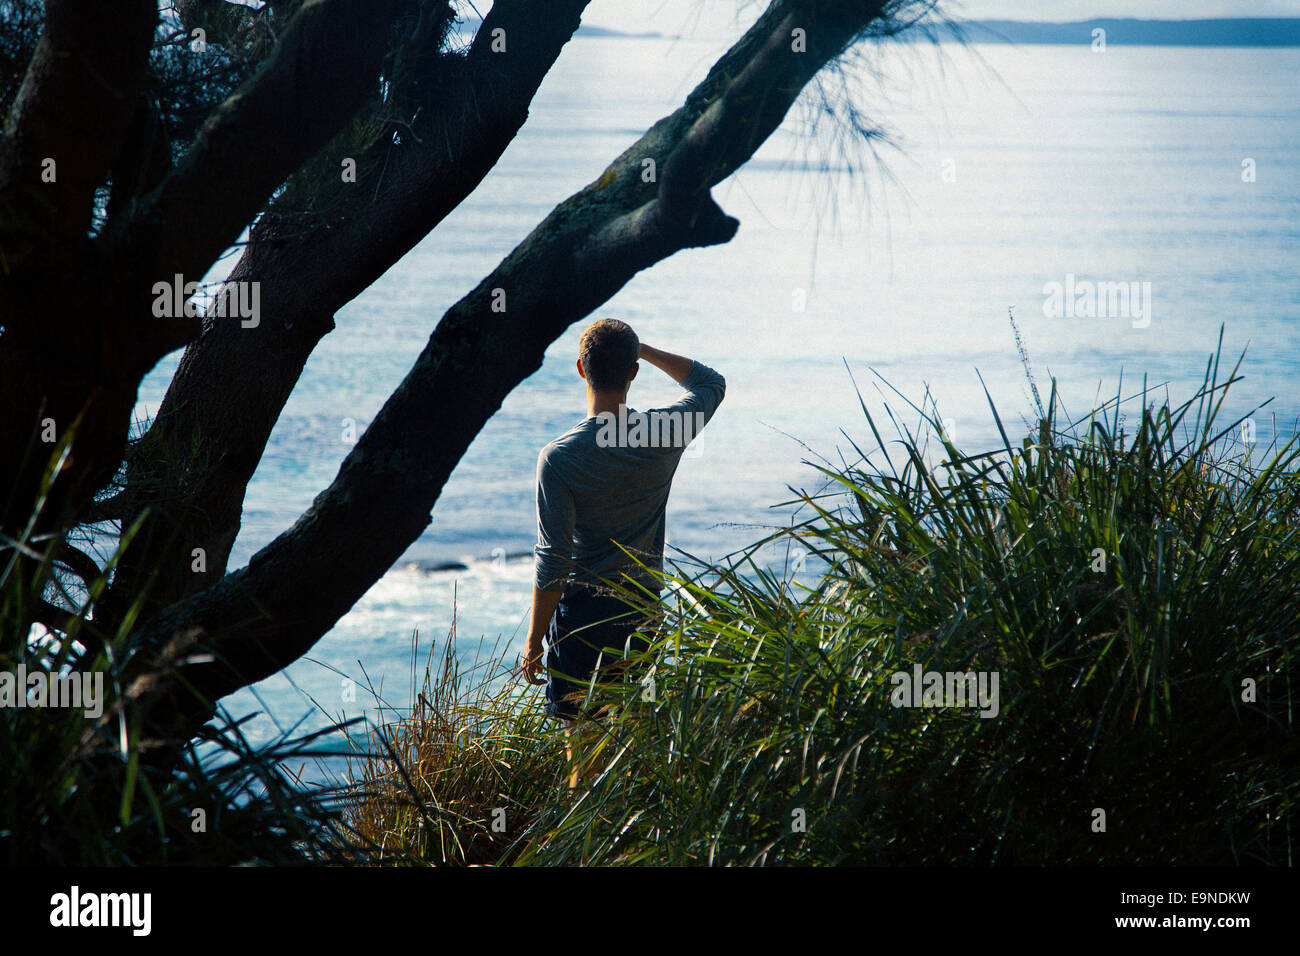 Young man standing at a cliff, Australia - Stock Image